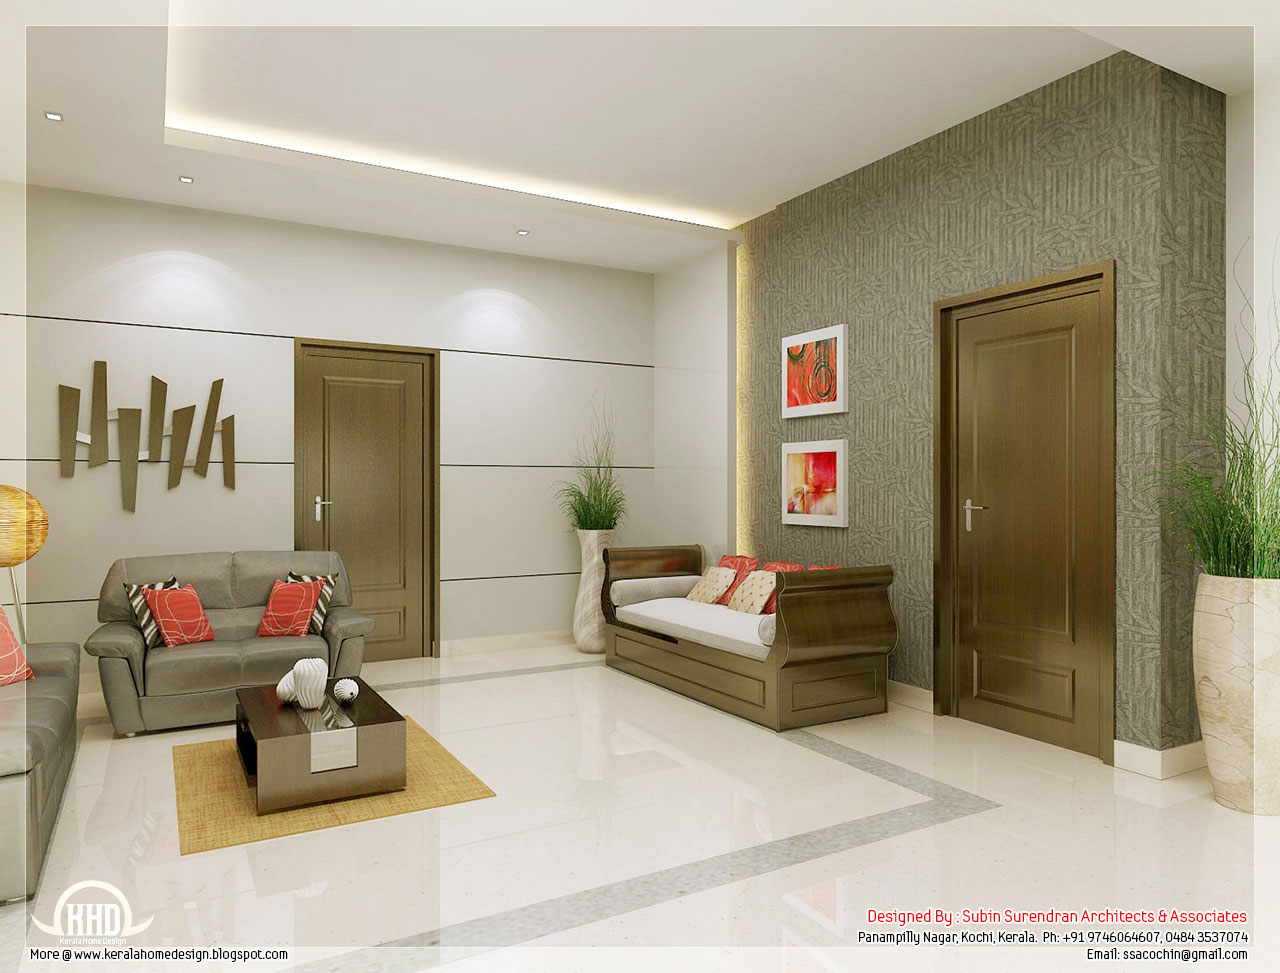 Awesome 3d interior renderings kerala home design and for Room interior design images